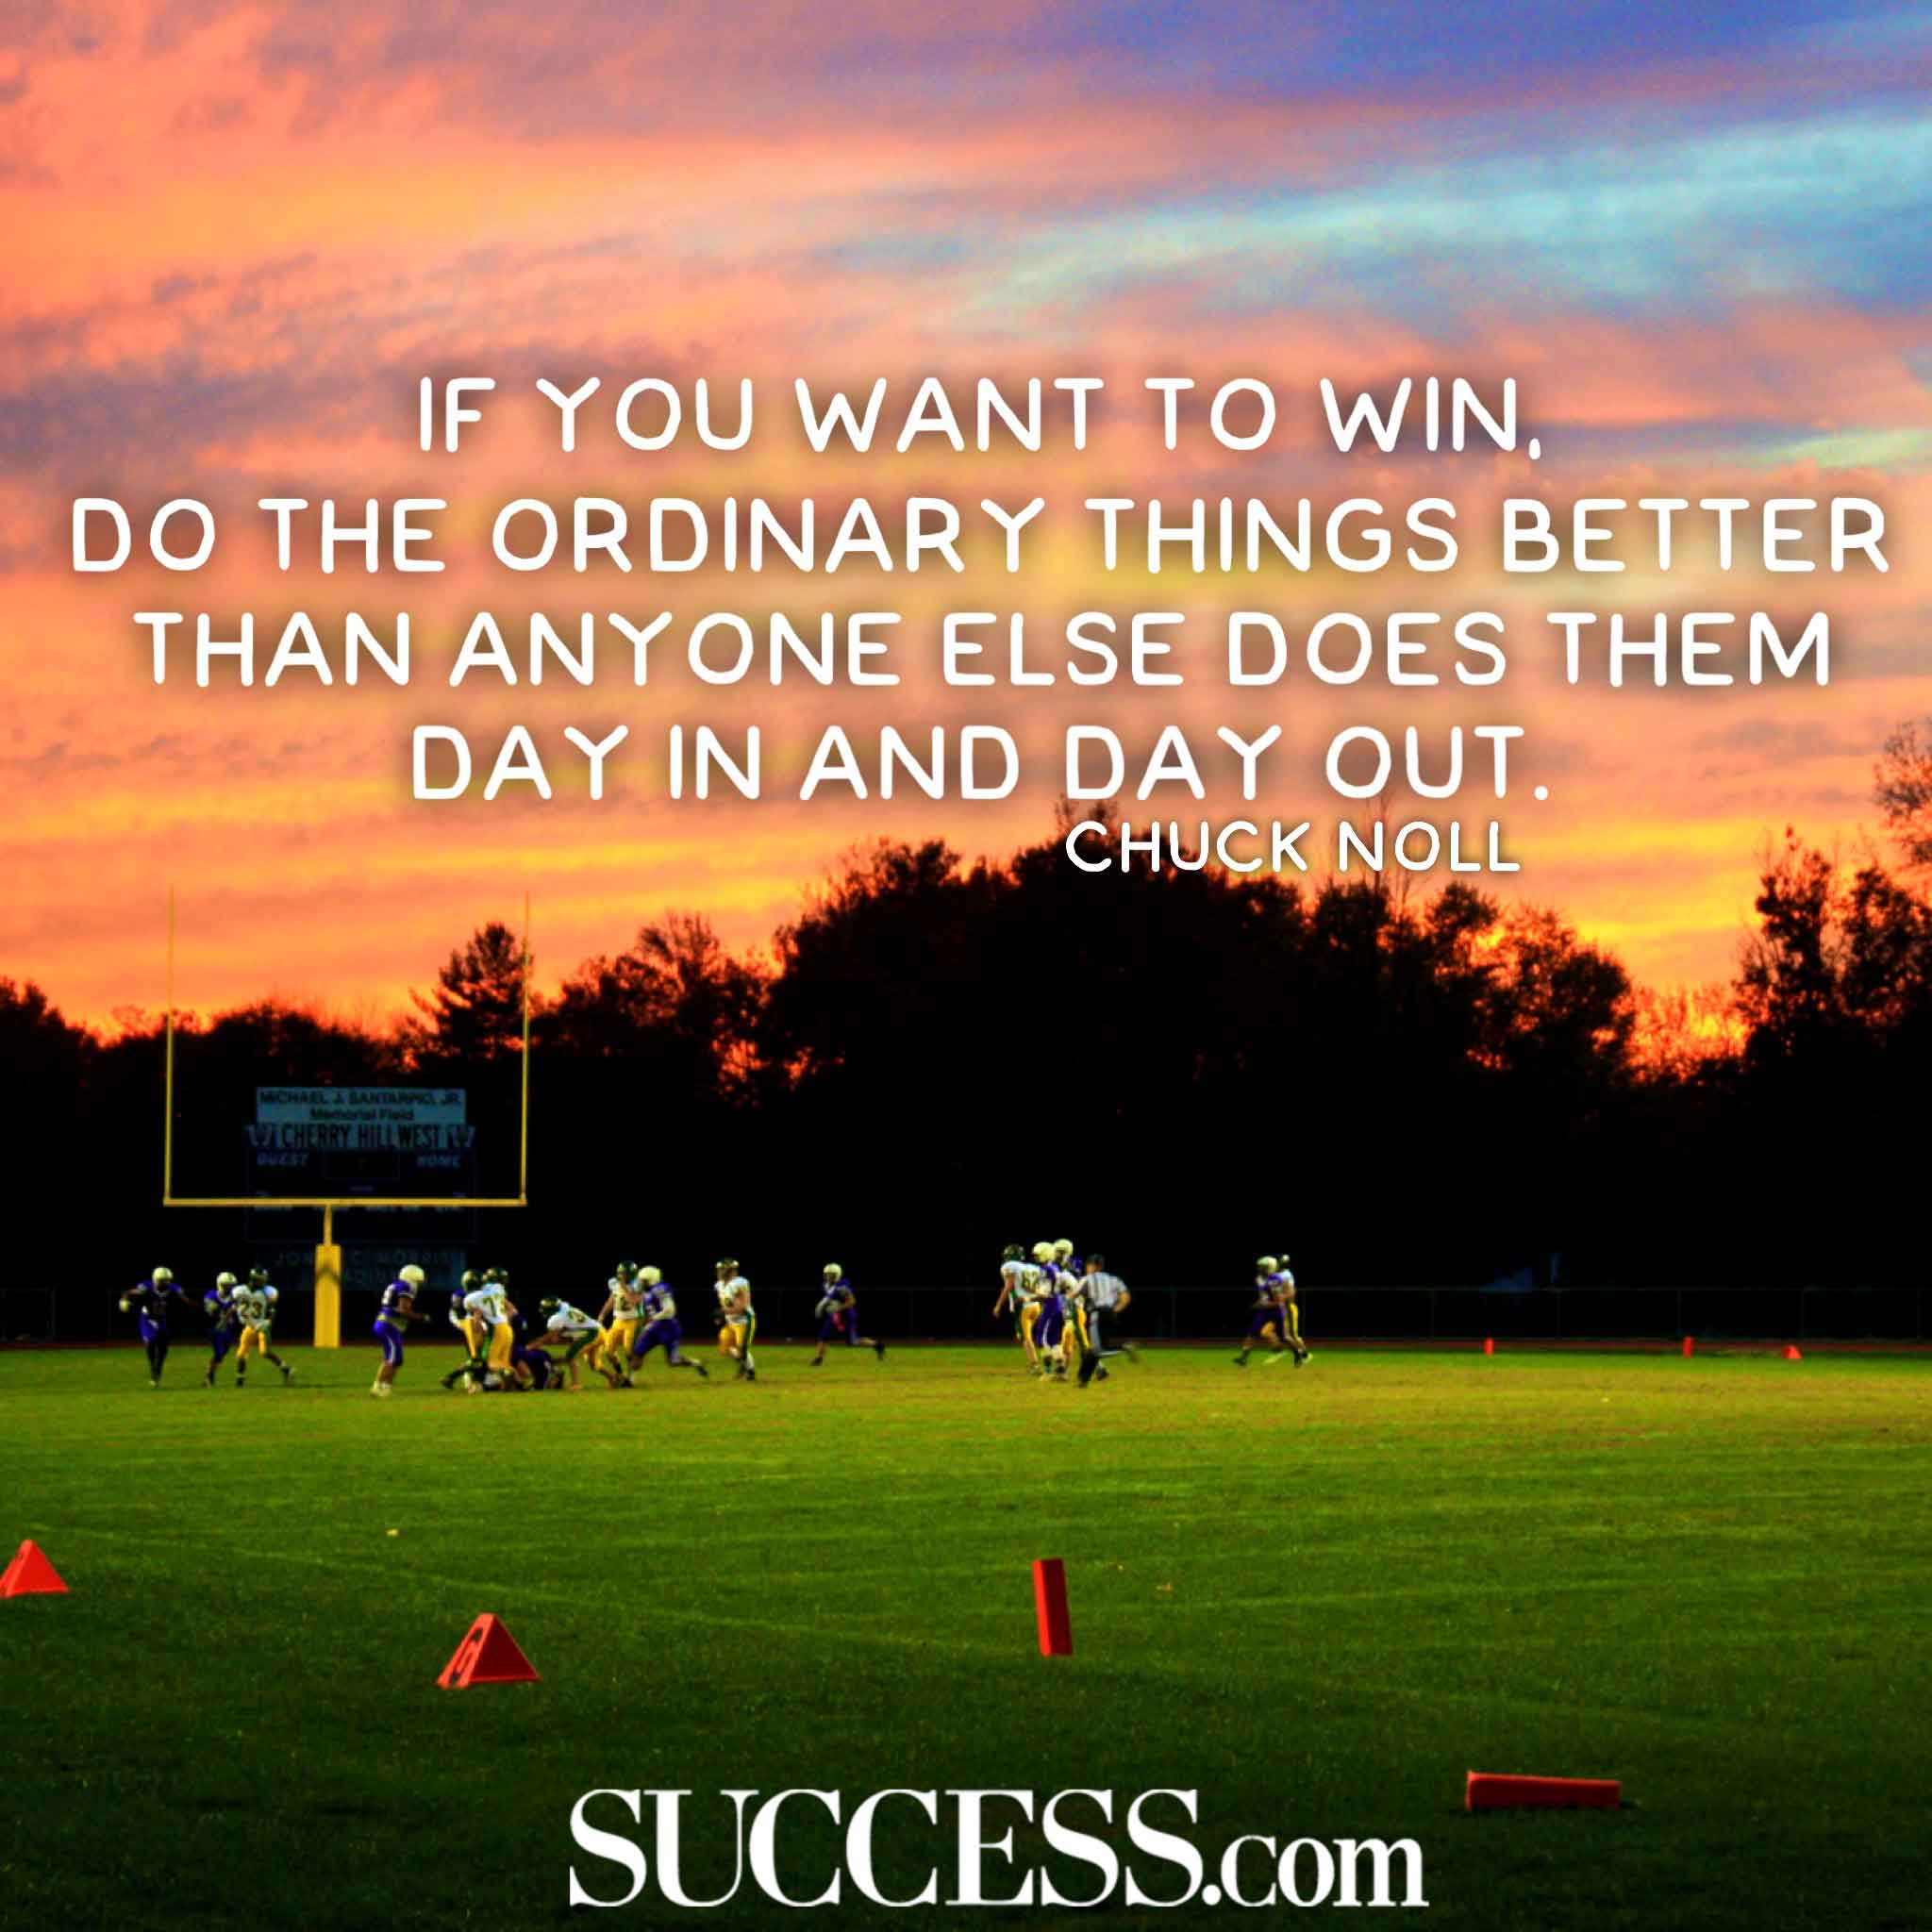 Motivational Inspirational Quotes: 20 Motivational Quotes By The Most Inspiring NFL Coaches